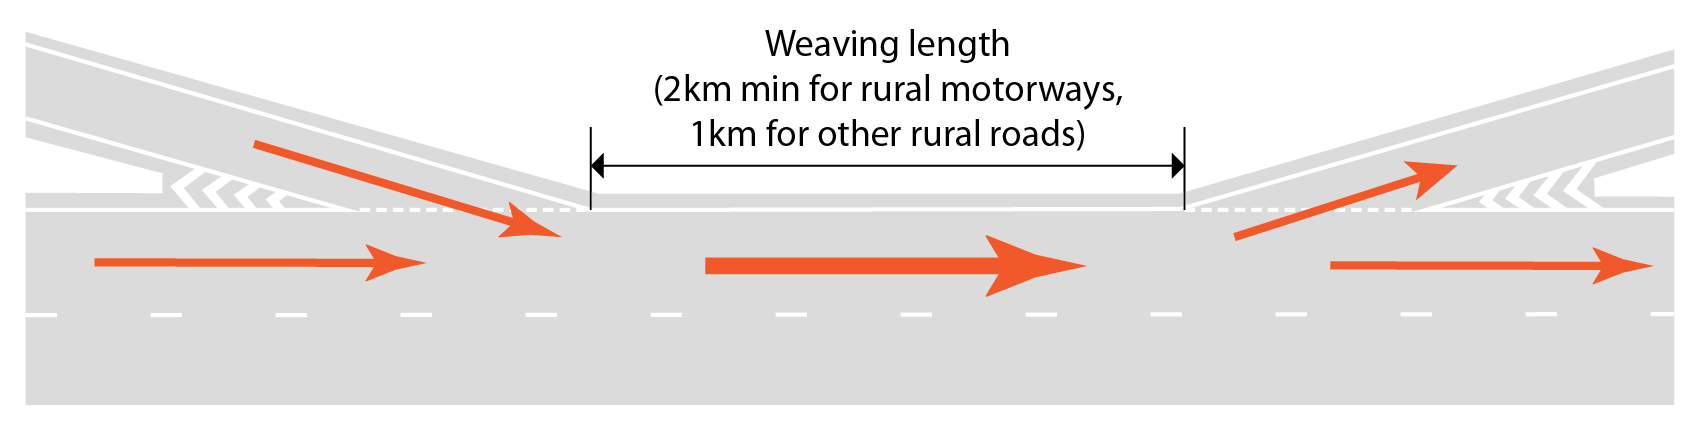 Illustration of weaving length